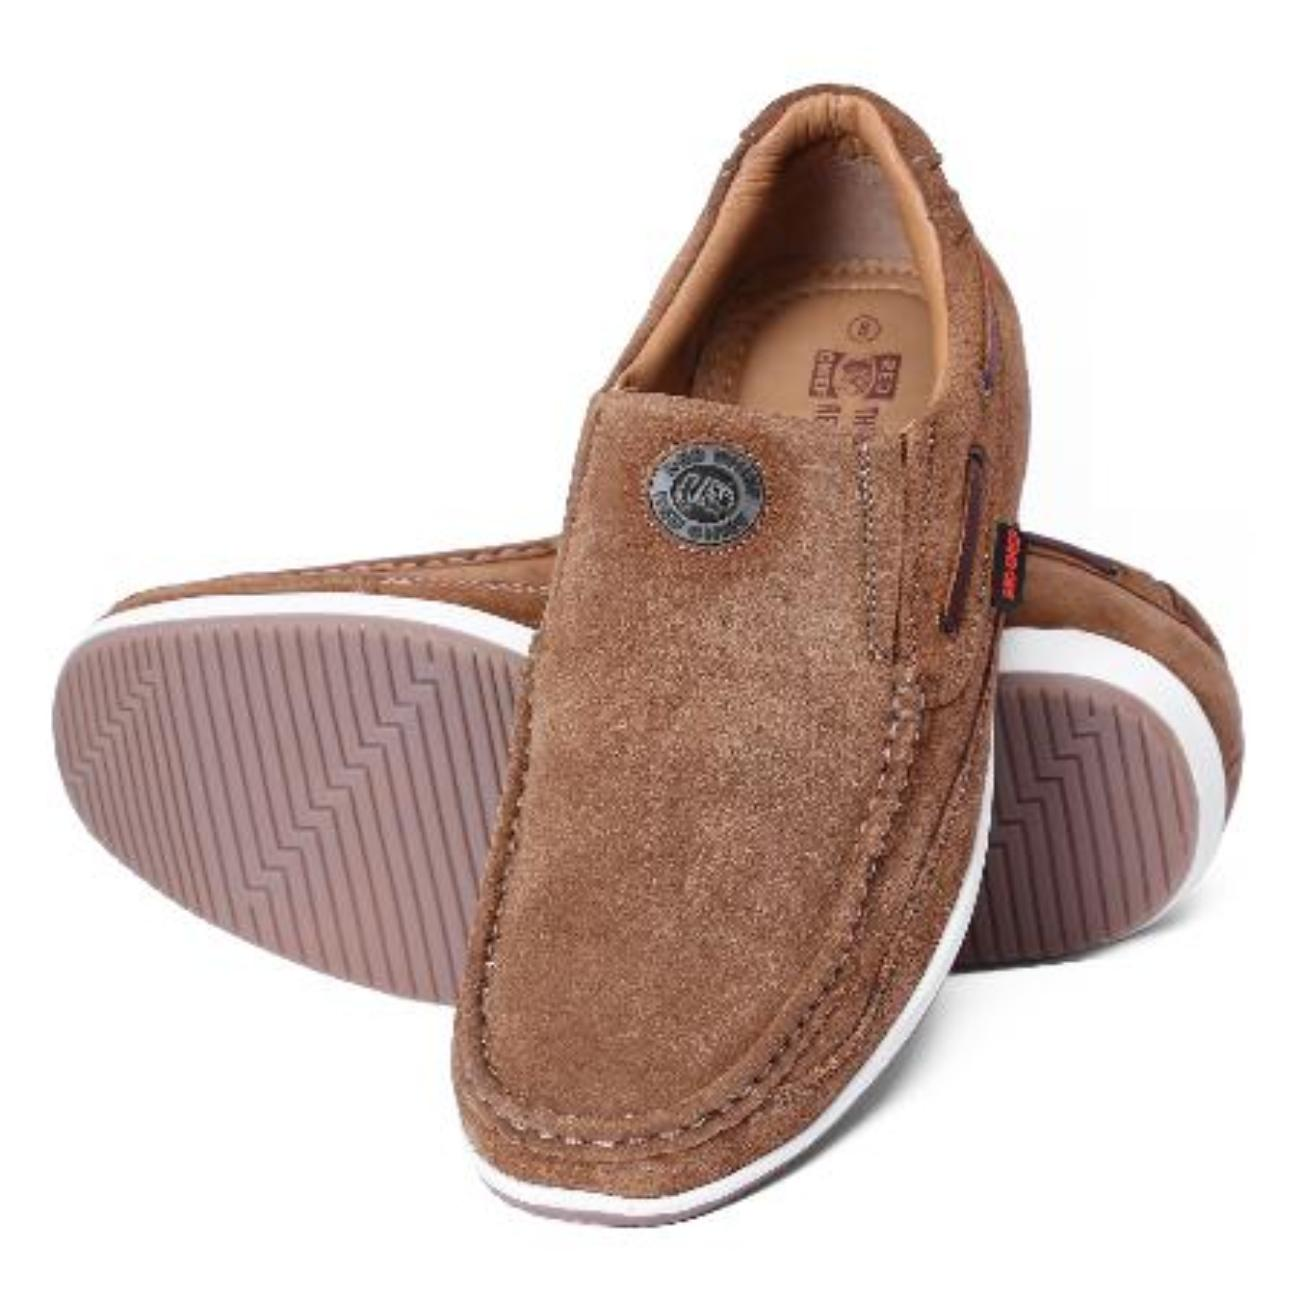 rust casual leather loafers by red chief